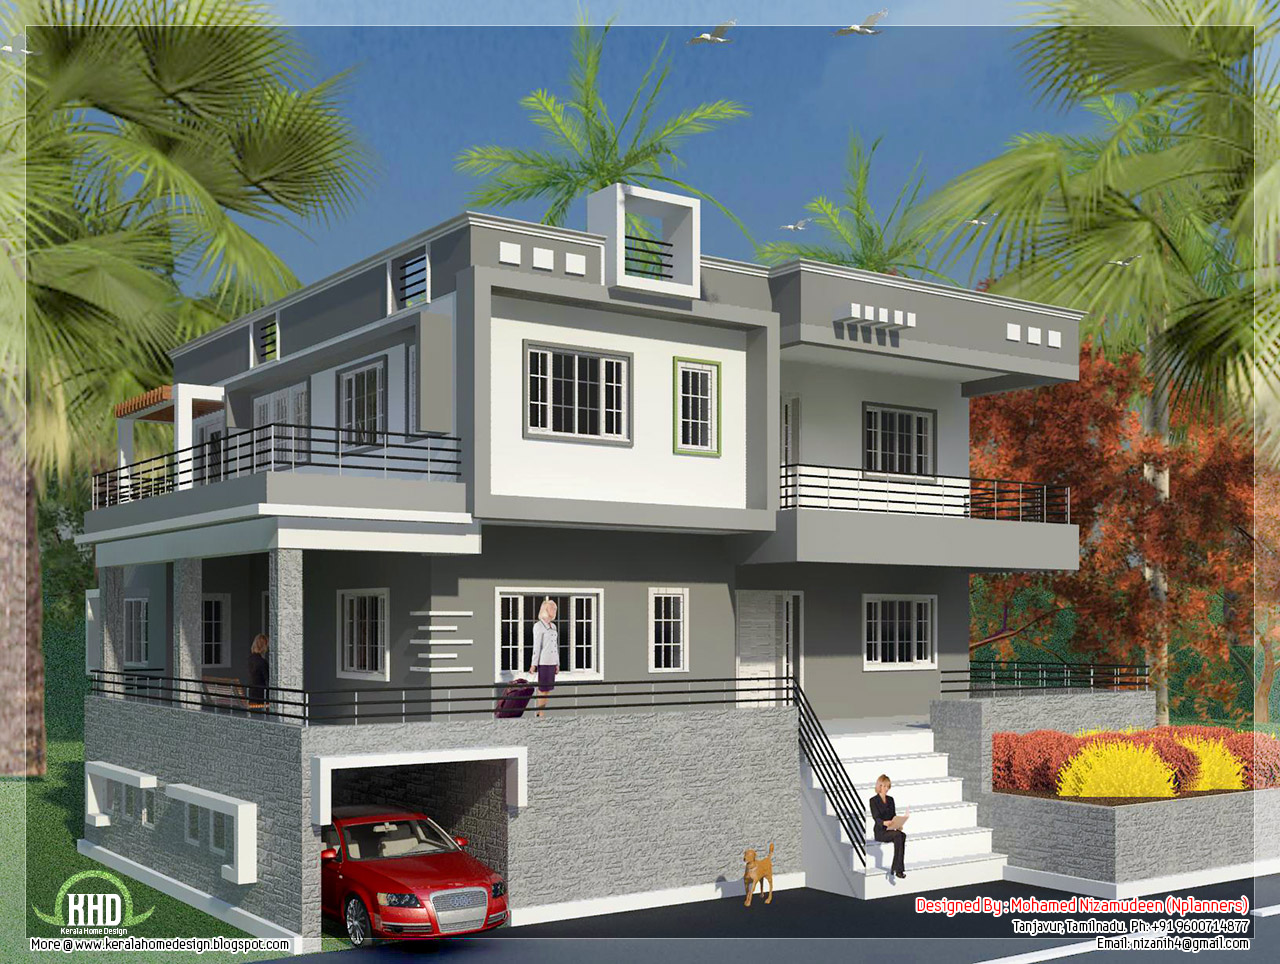 North indian style minimalist house exterior design Indian house exterior design